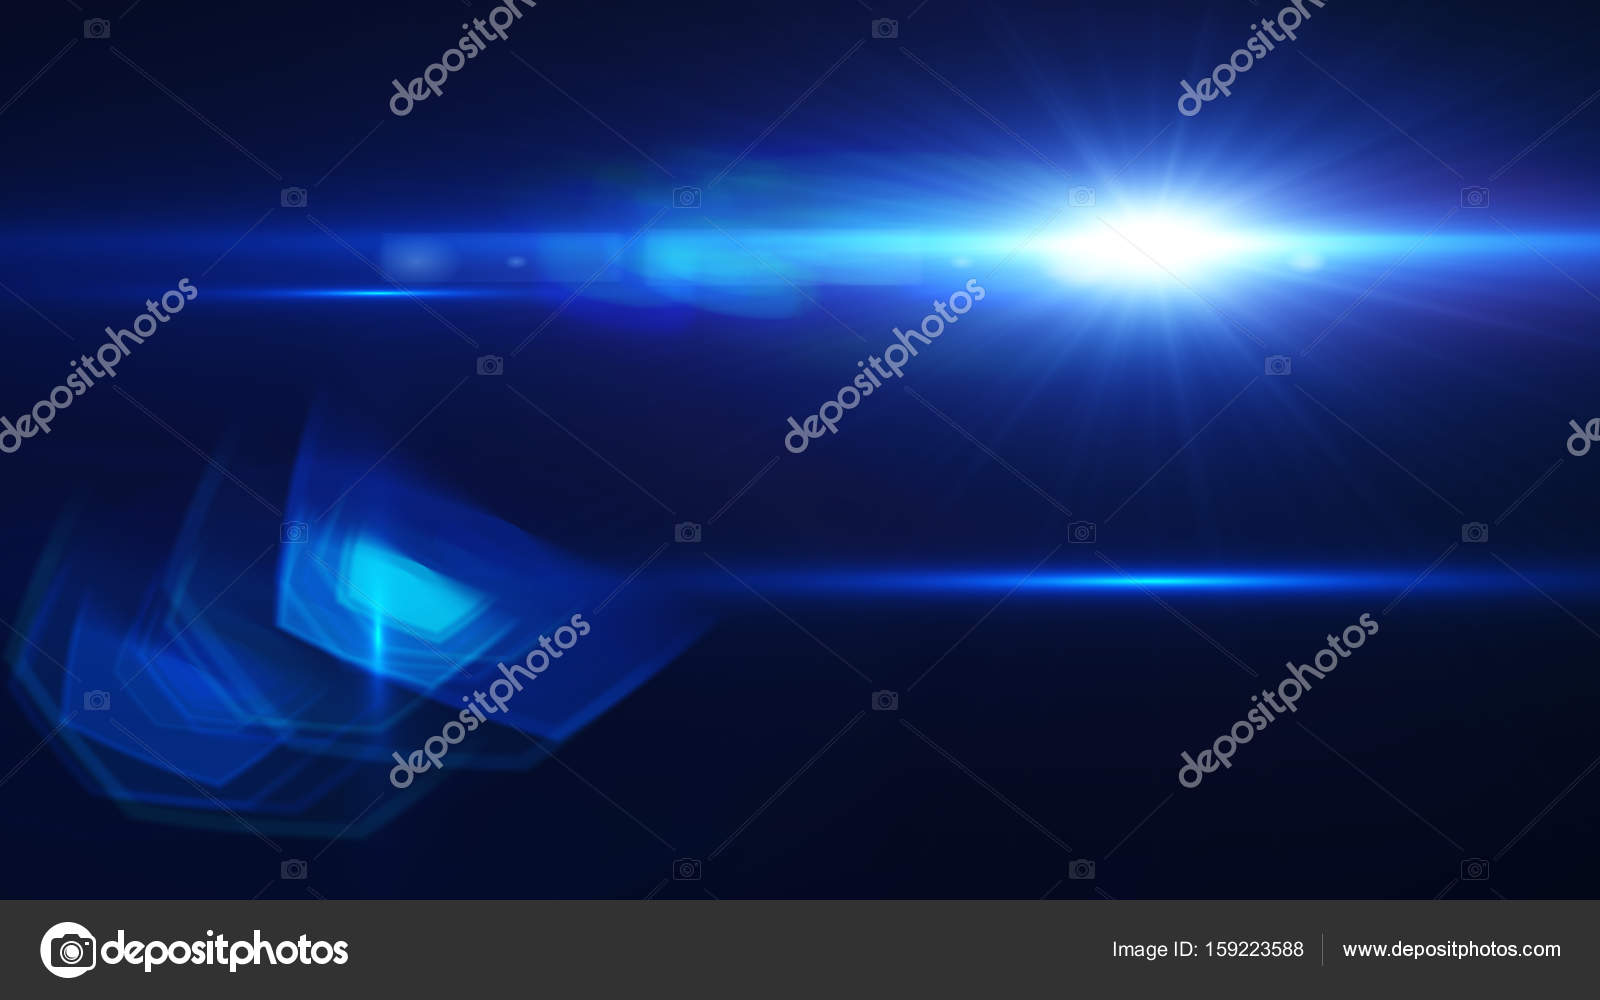 Digital flares special lighting effects on black background  Abstract Len flare. u2014 Photo by vijaifoon & Digital flares special lighting effects on black background ...